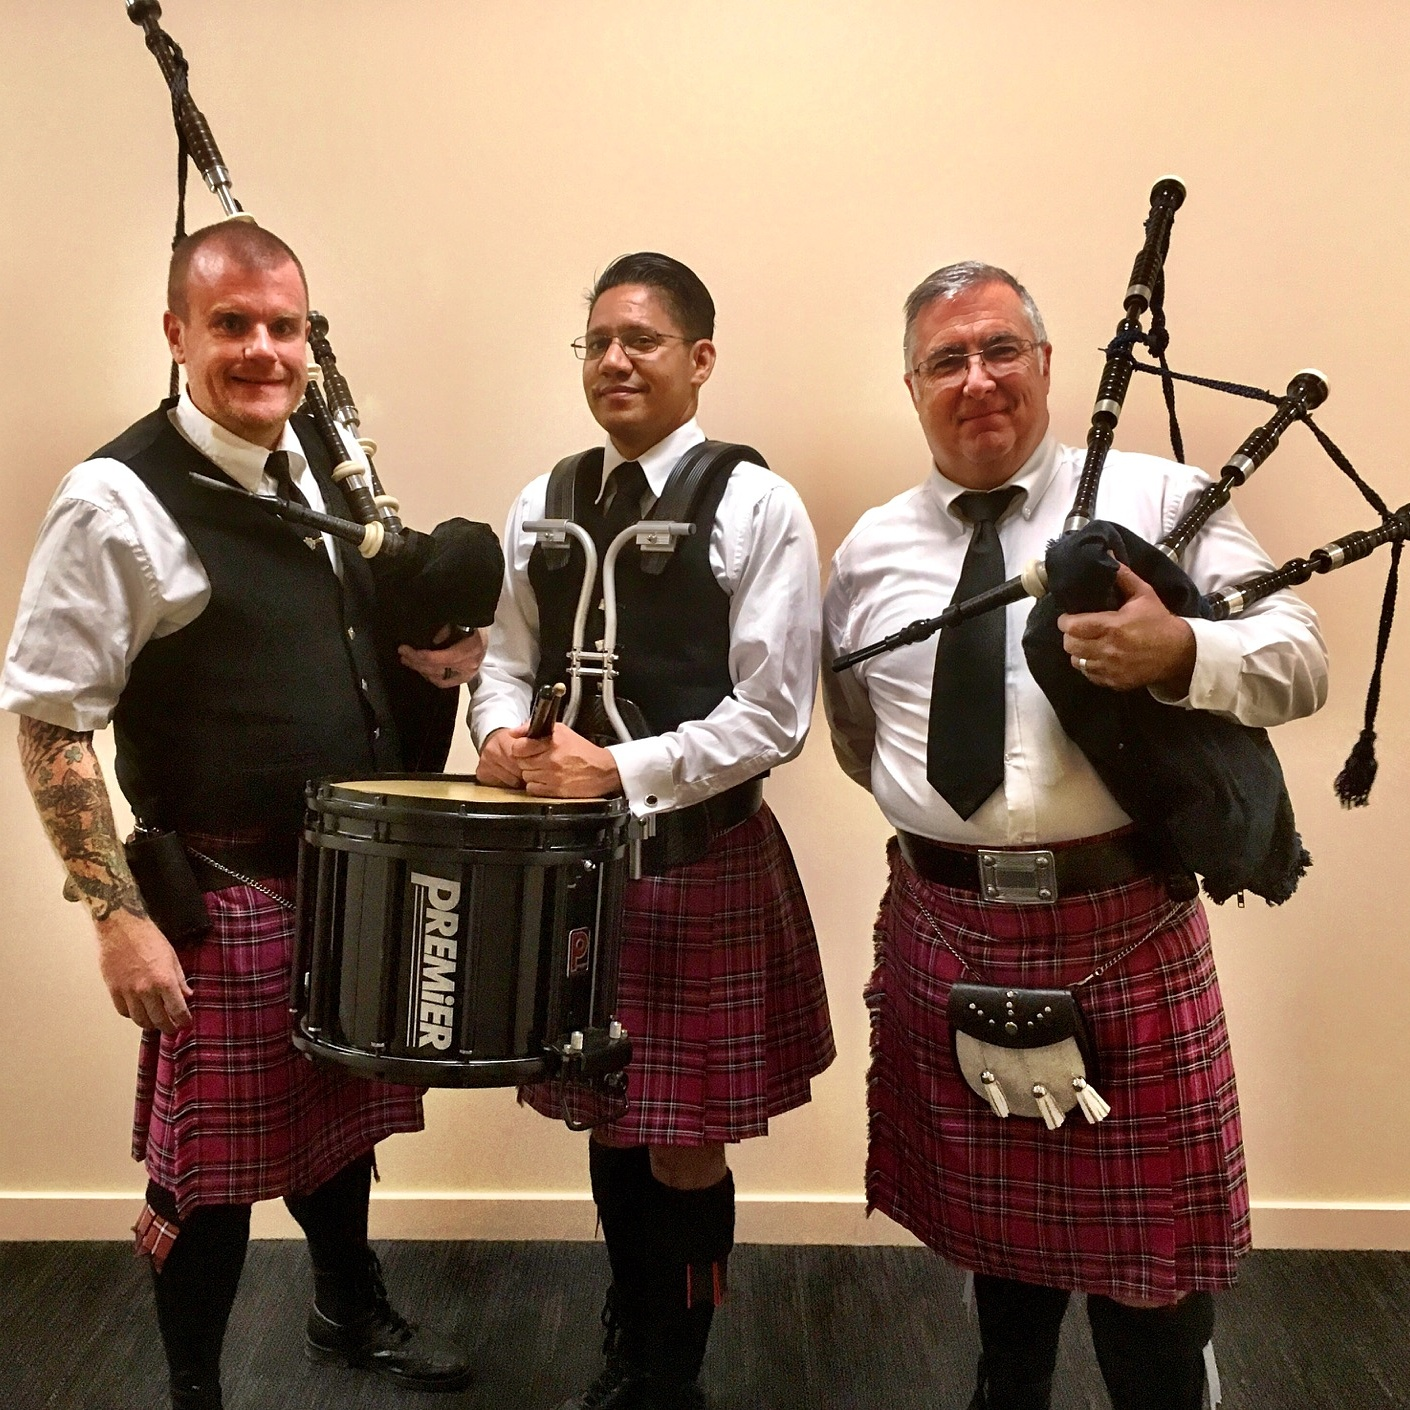 image of 3 pipers at Breast Cancer Fundraiser–Pink Kilts!!